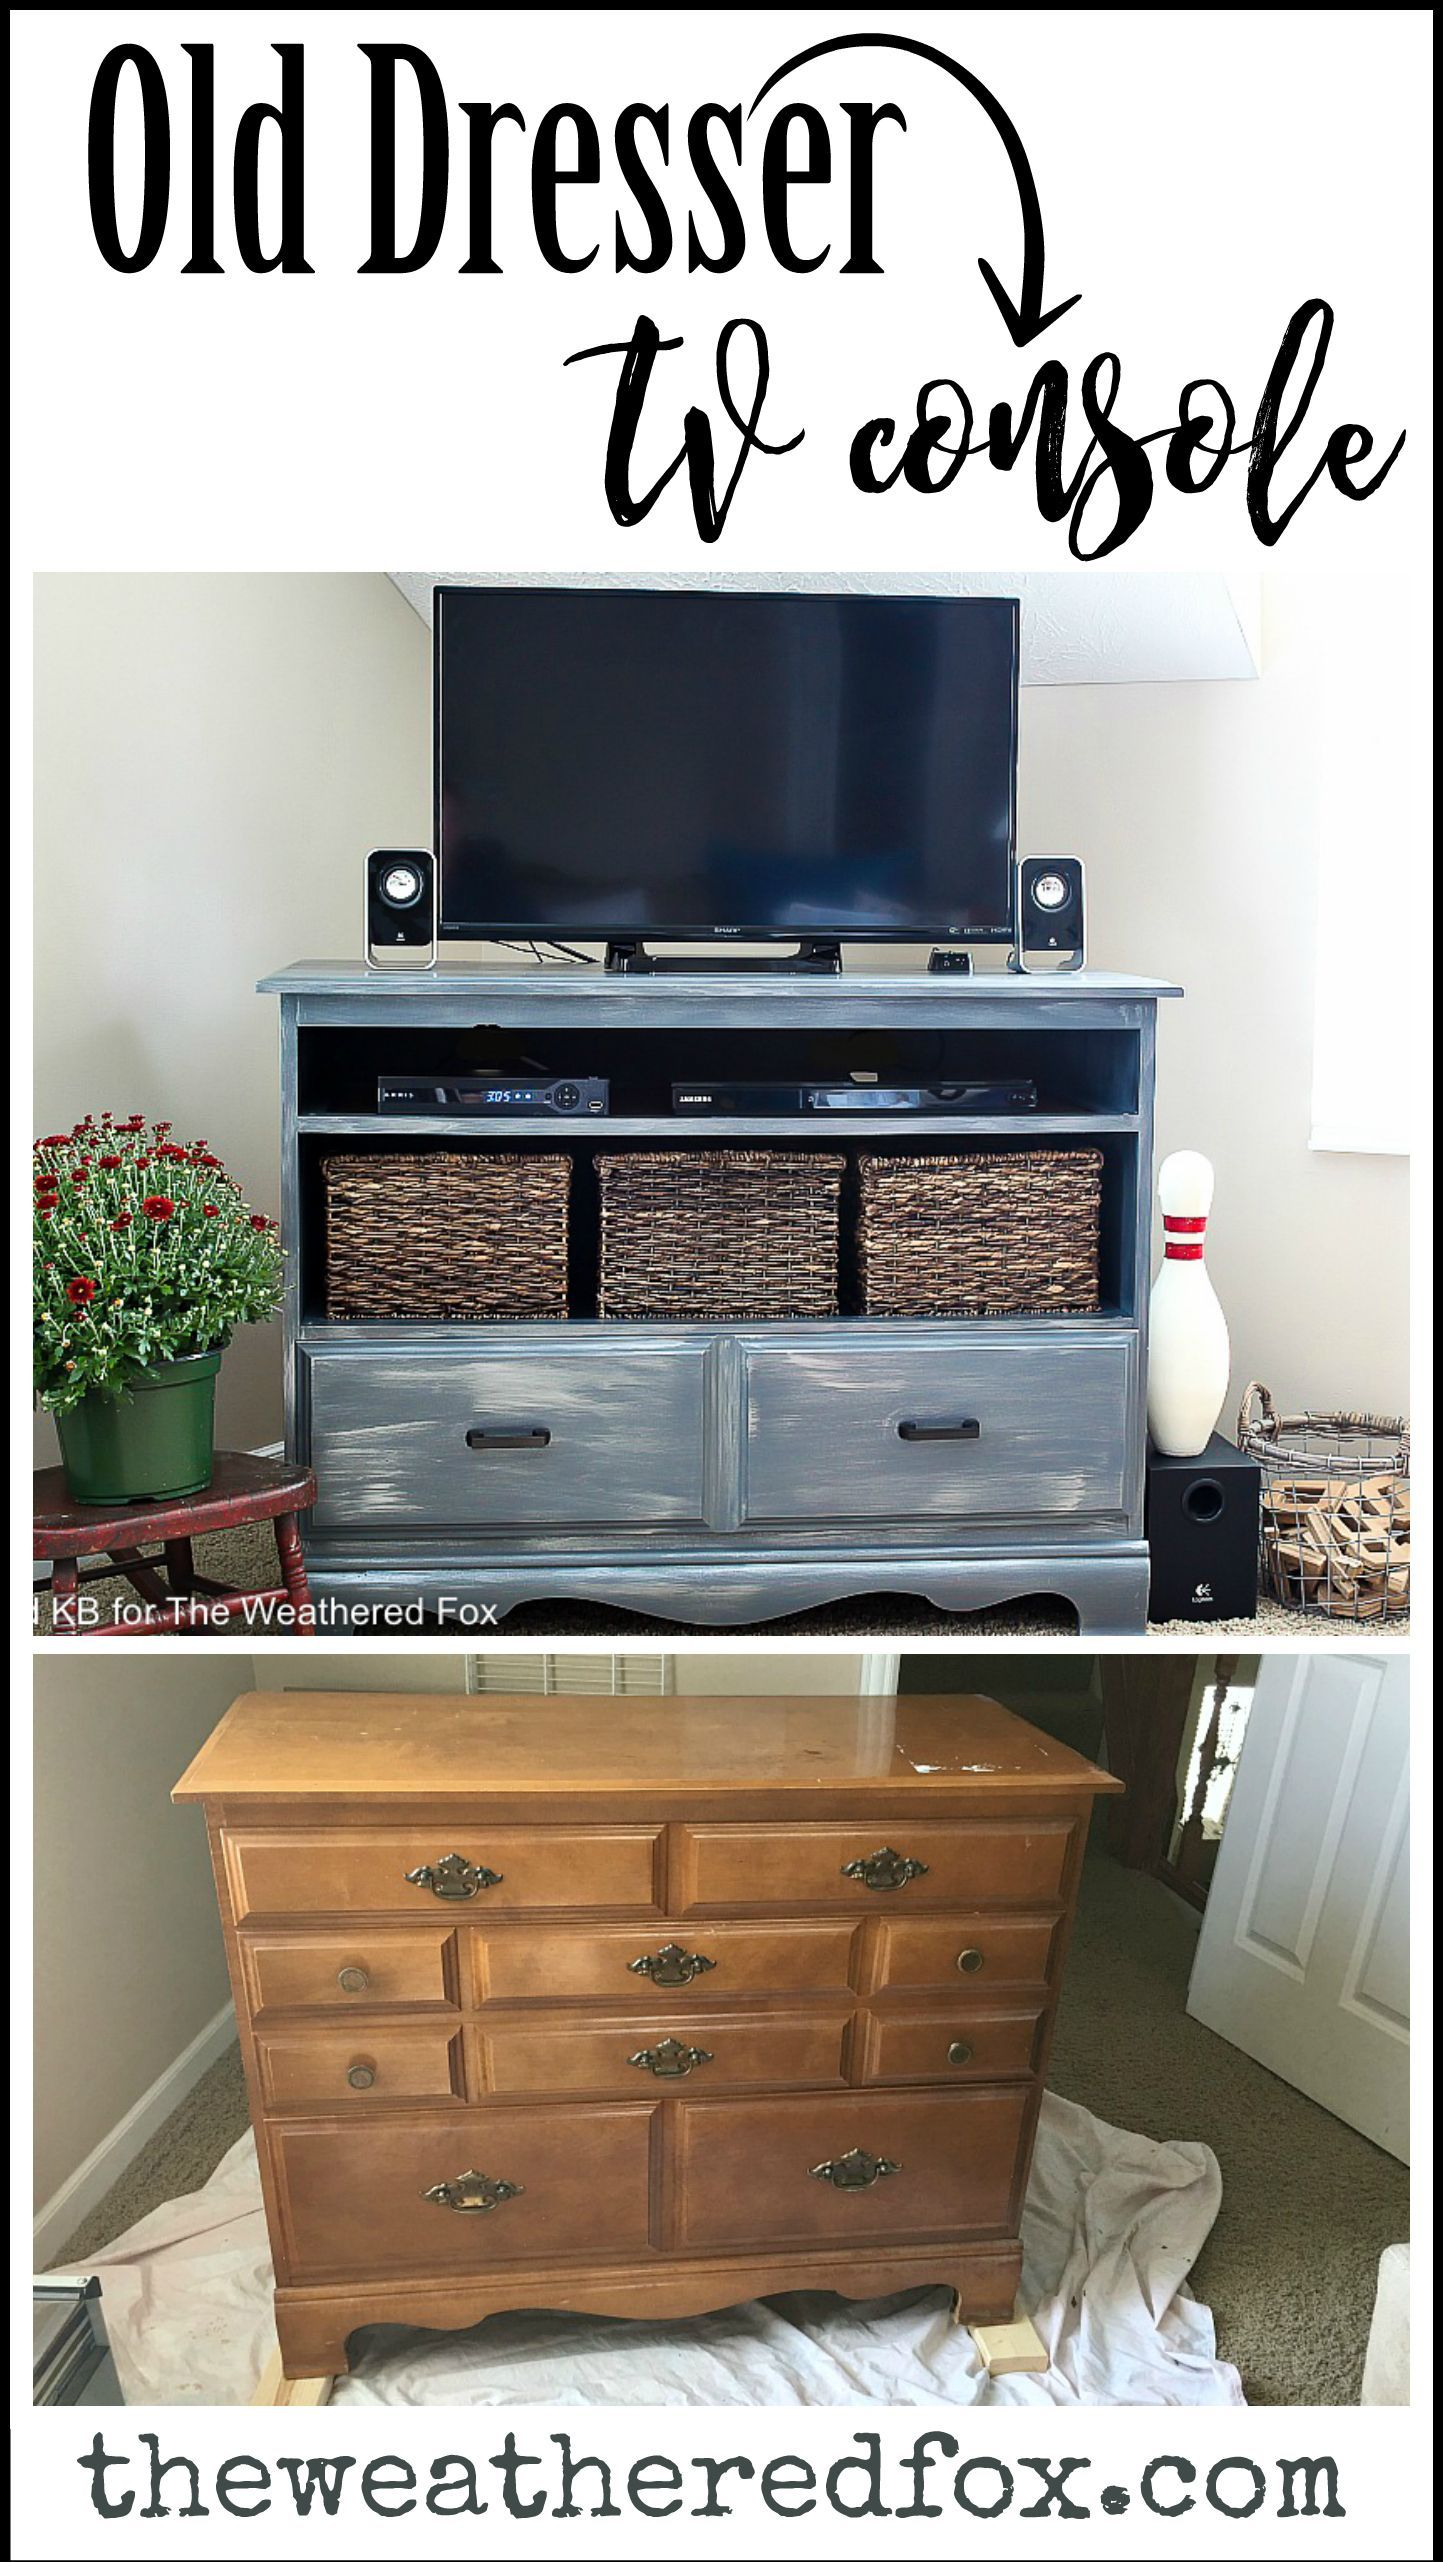 Turn an old dresser into a tv stand with these simple steps